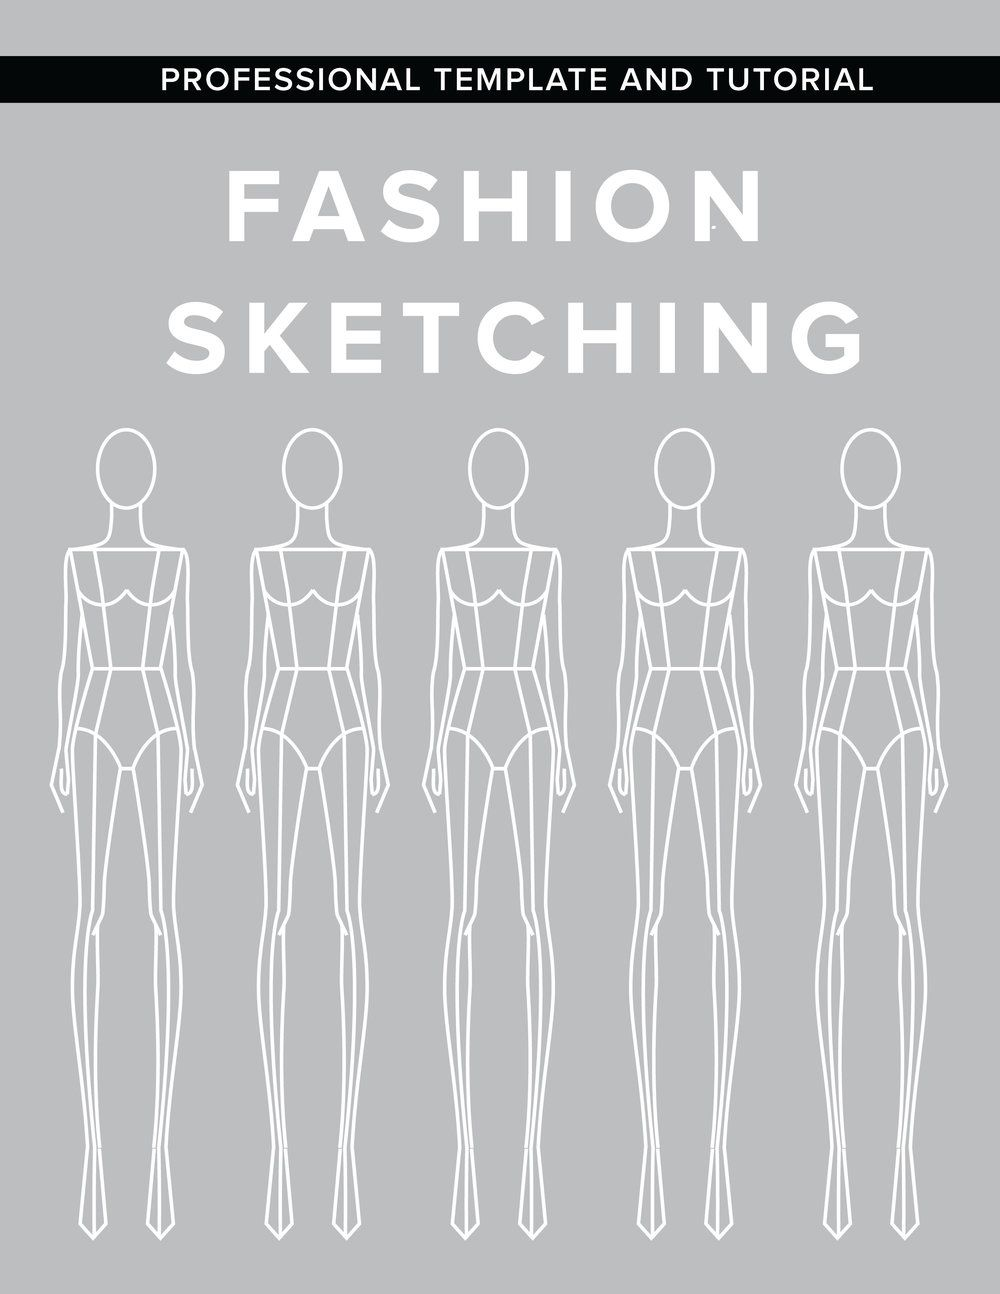 A 25 Page Pdf Guide On Drawing The Industry Standard Fashion Figure Fashion Illustrations Techniques Fashion Illustration Tutorial Fashion Figure Templates